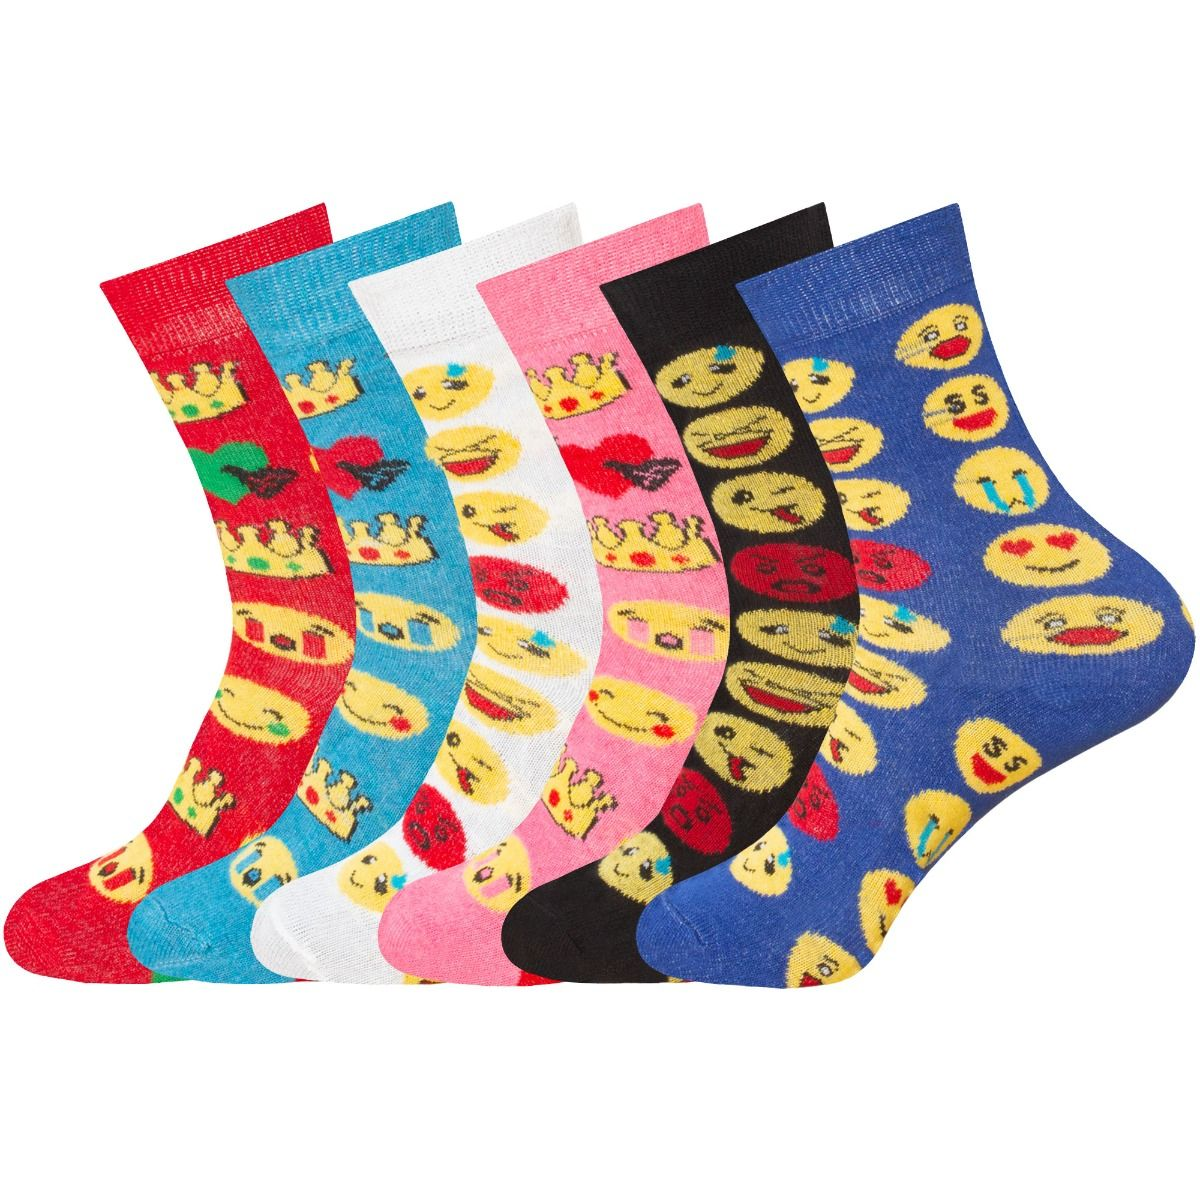 Accessories | Womens Novelty Design Ankle Socks, From £3.49, Guest Brand, in  | Raw Denim Outlet